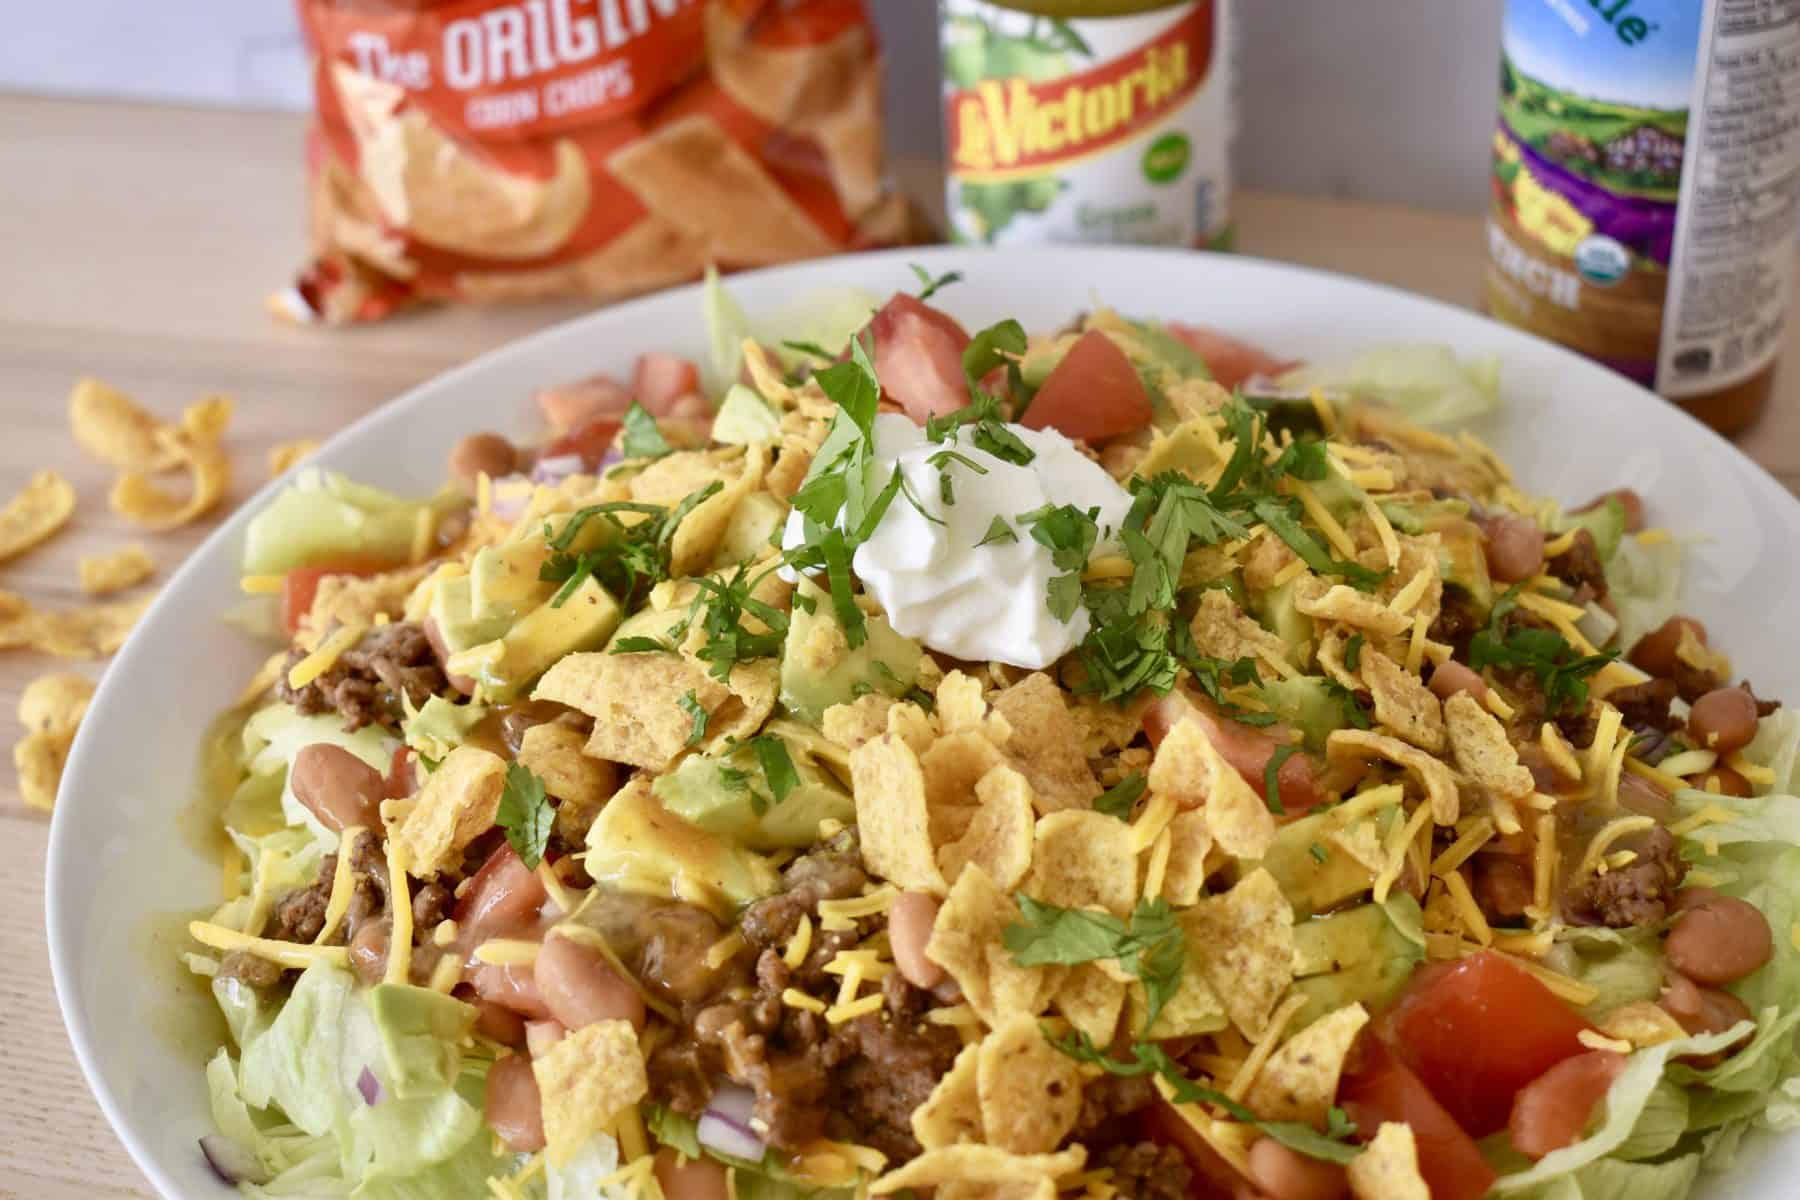 Frito Taco Salad with French dressing and green taco sauce.